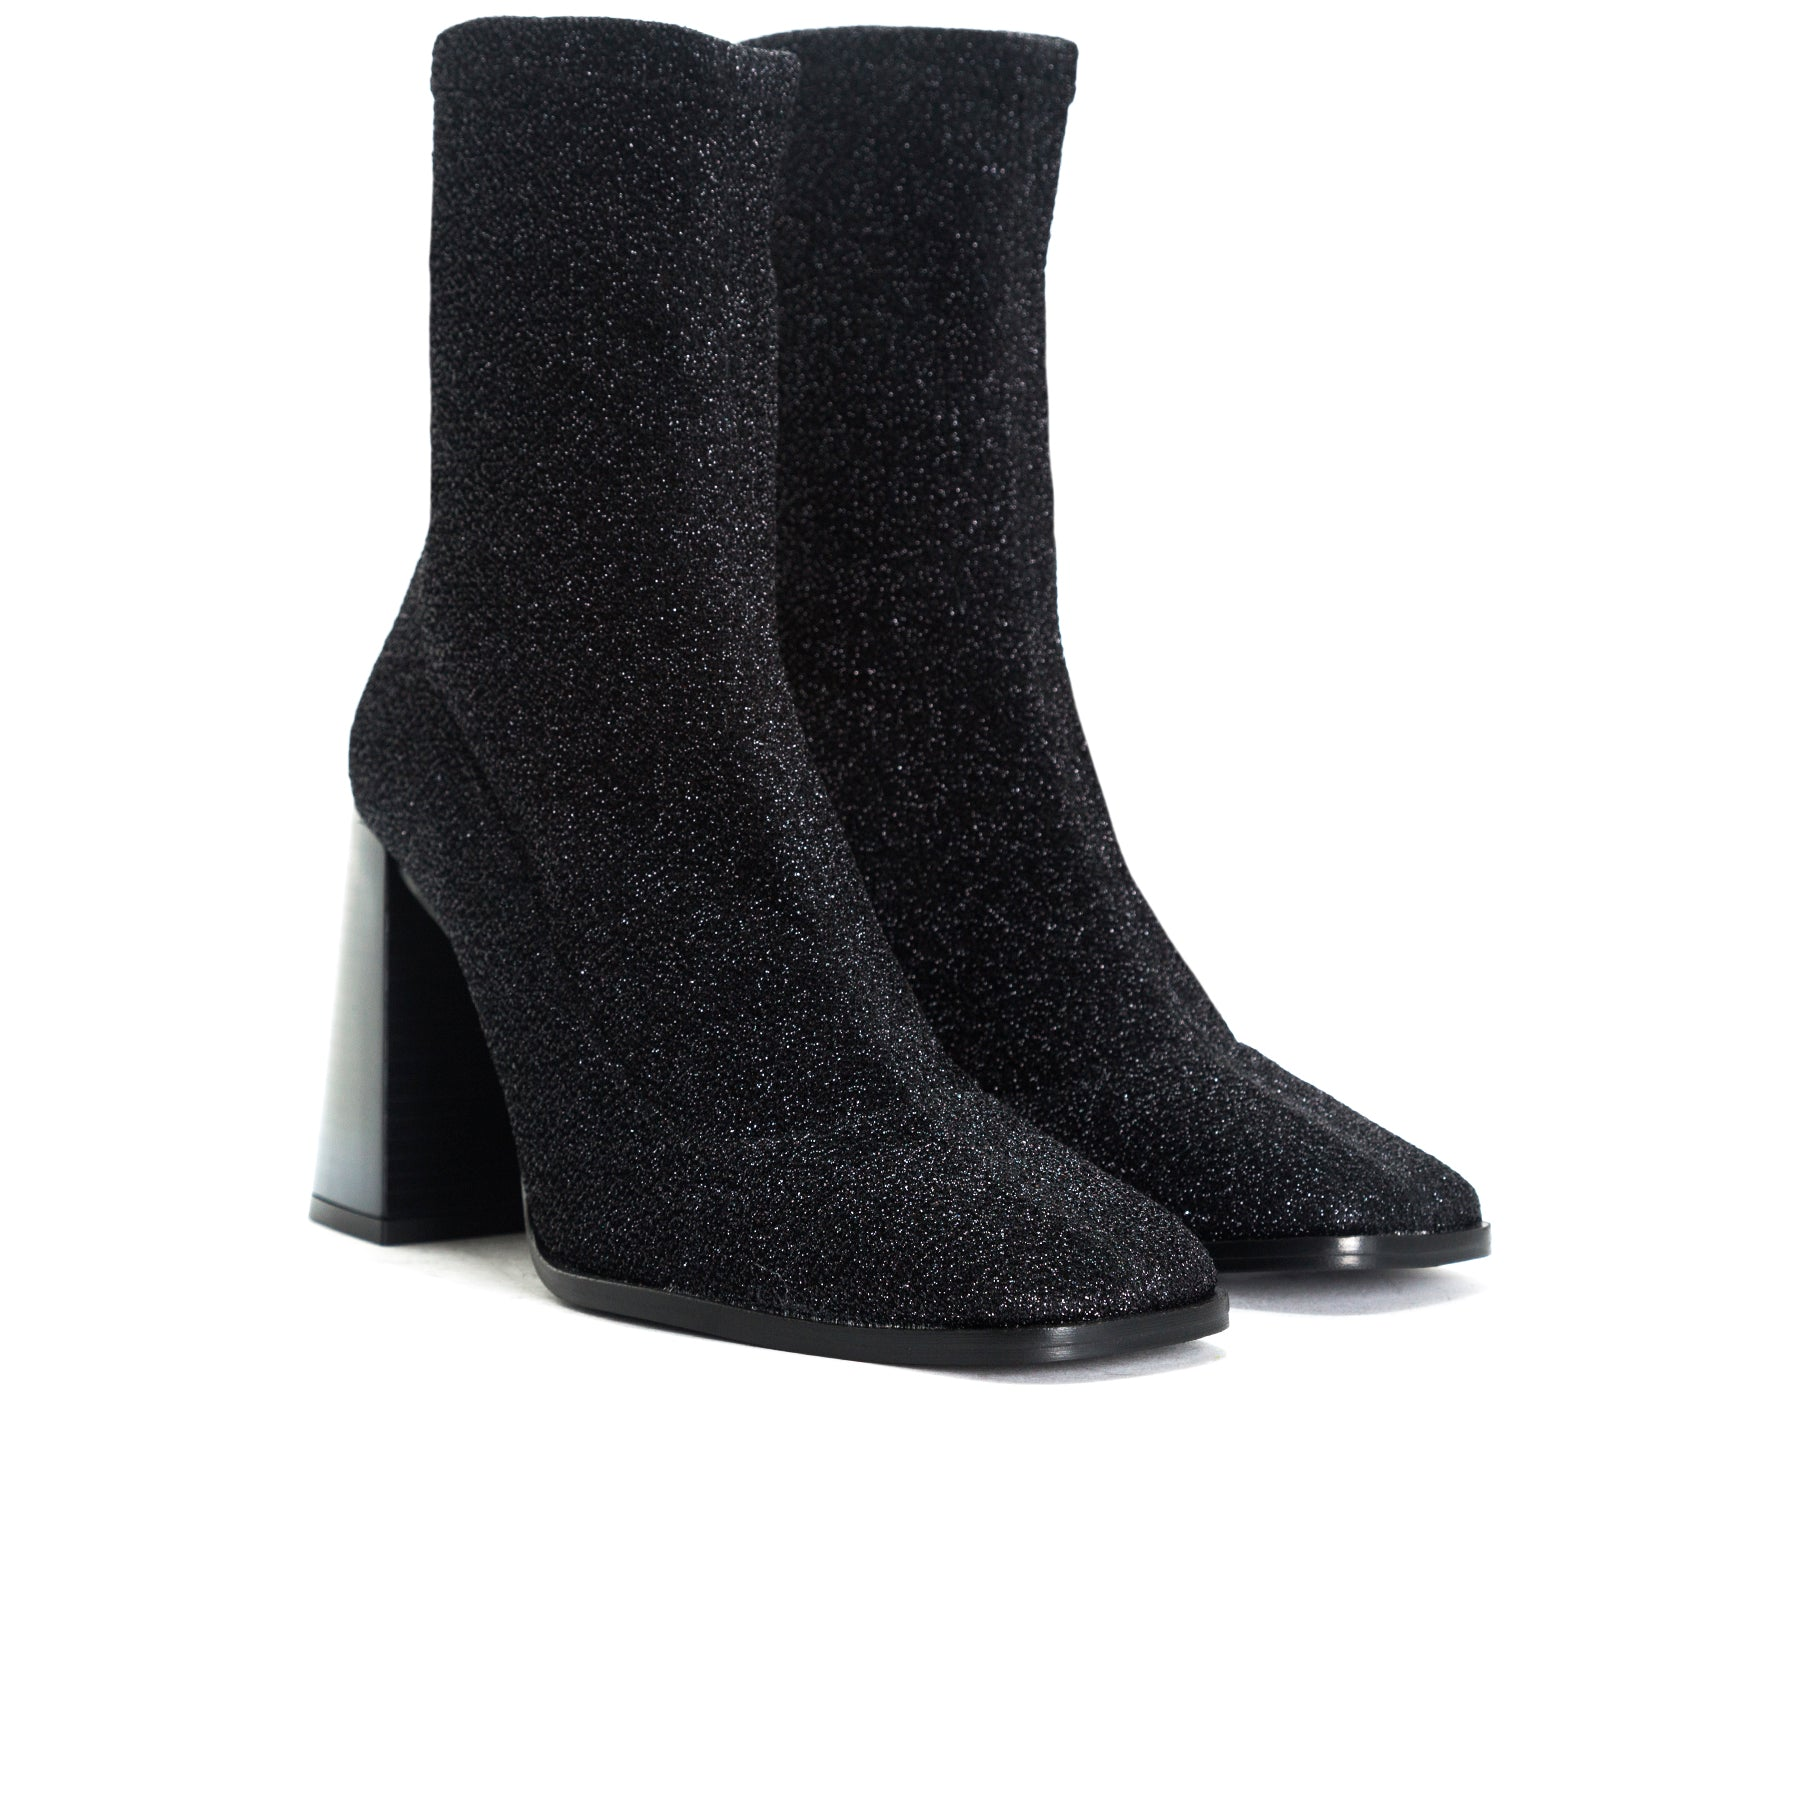 Nikiti Black Stretch Booties